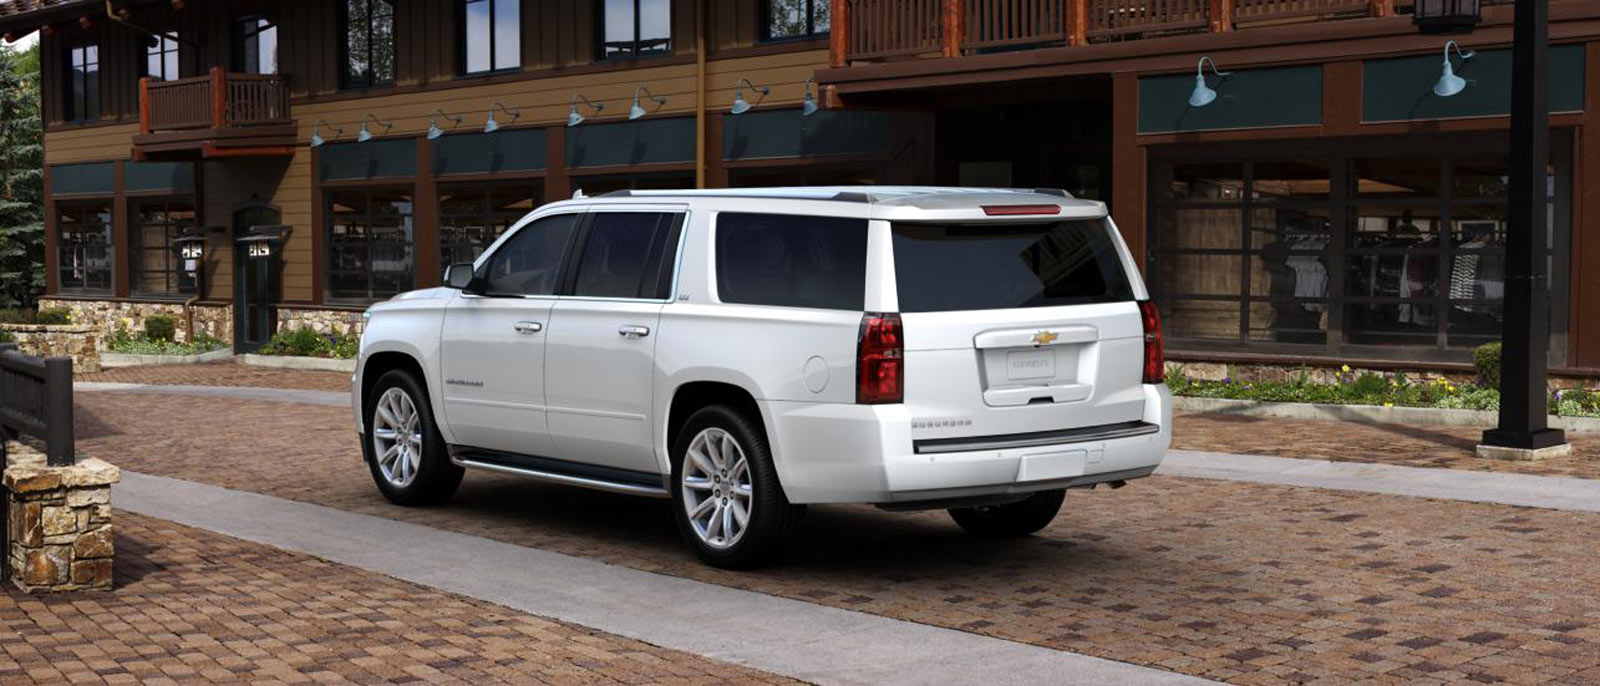 2016 chevrolet suburban specs info cox chevrolet. Black Bedroom Furniture Sets. Home Design Ideas